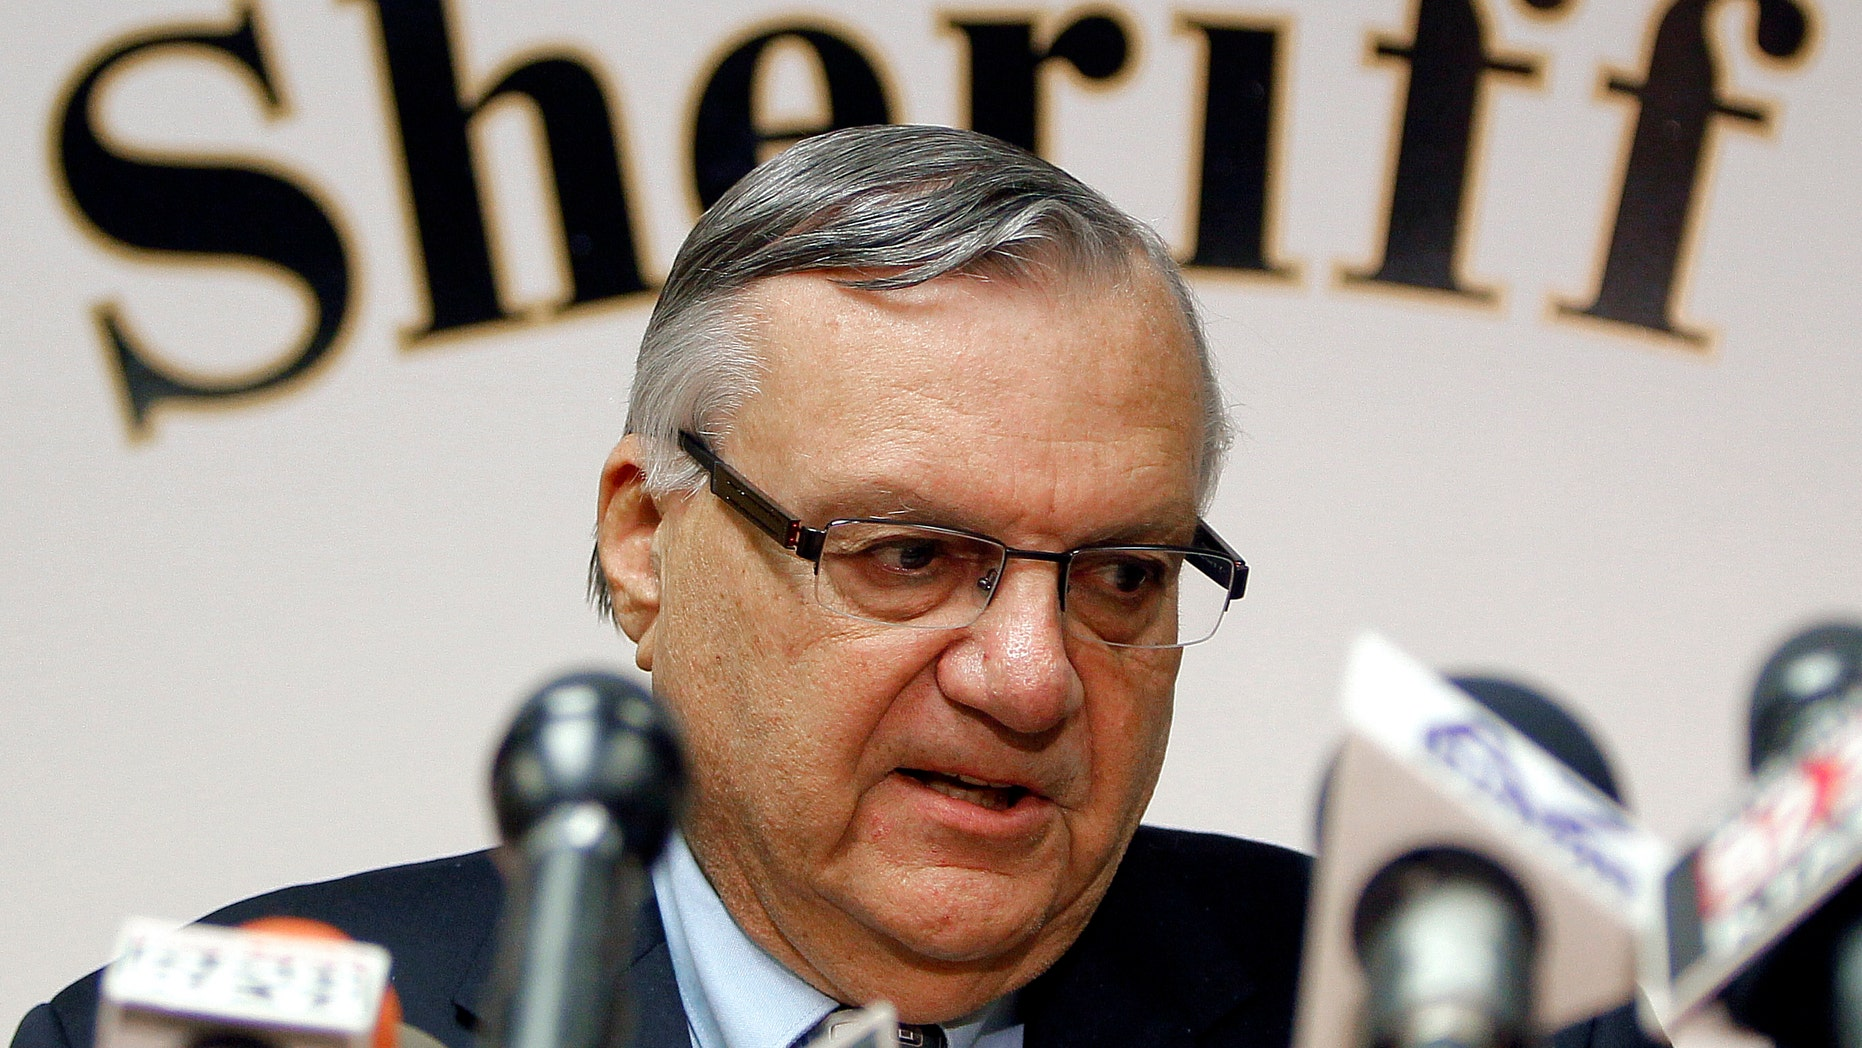 Maricopa County (Ariz.) Sheriff Joe Arpaio